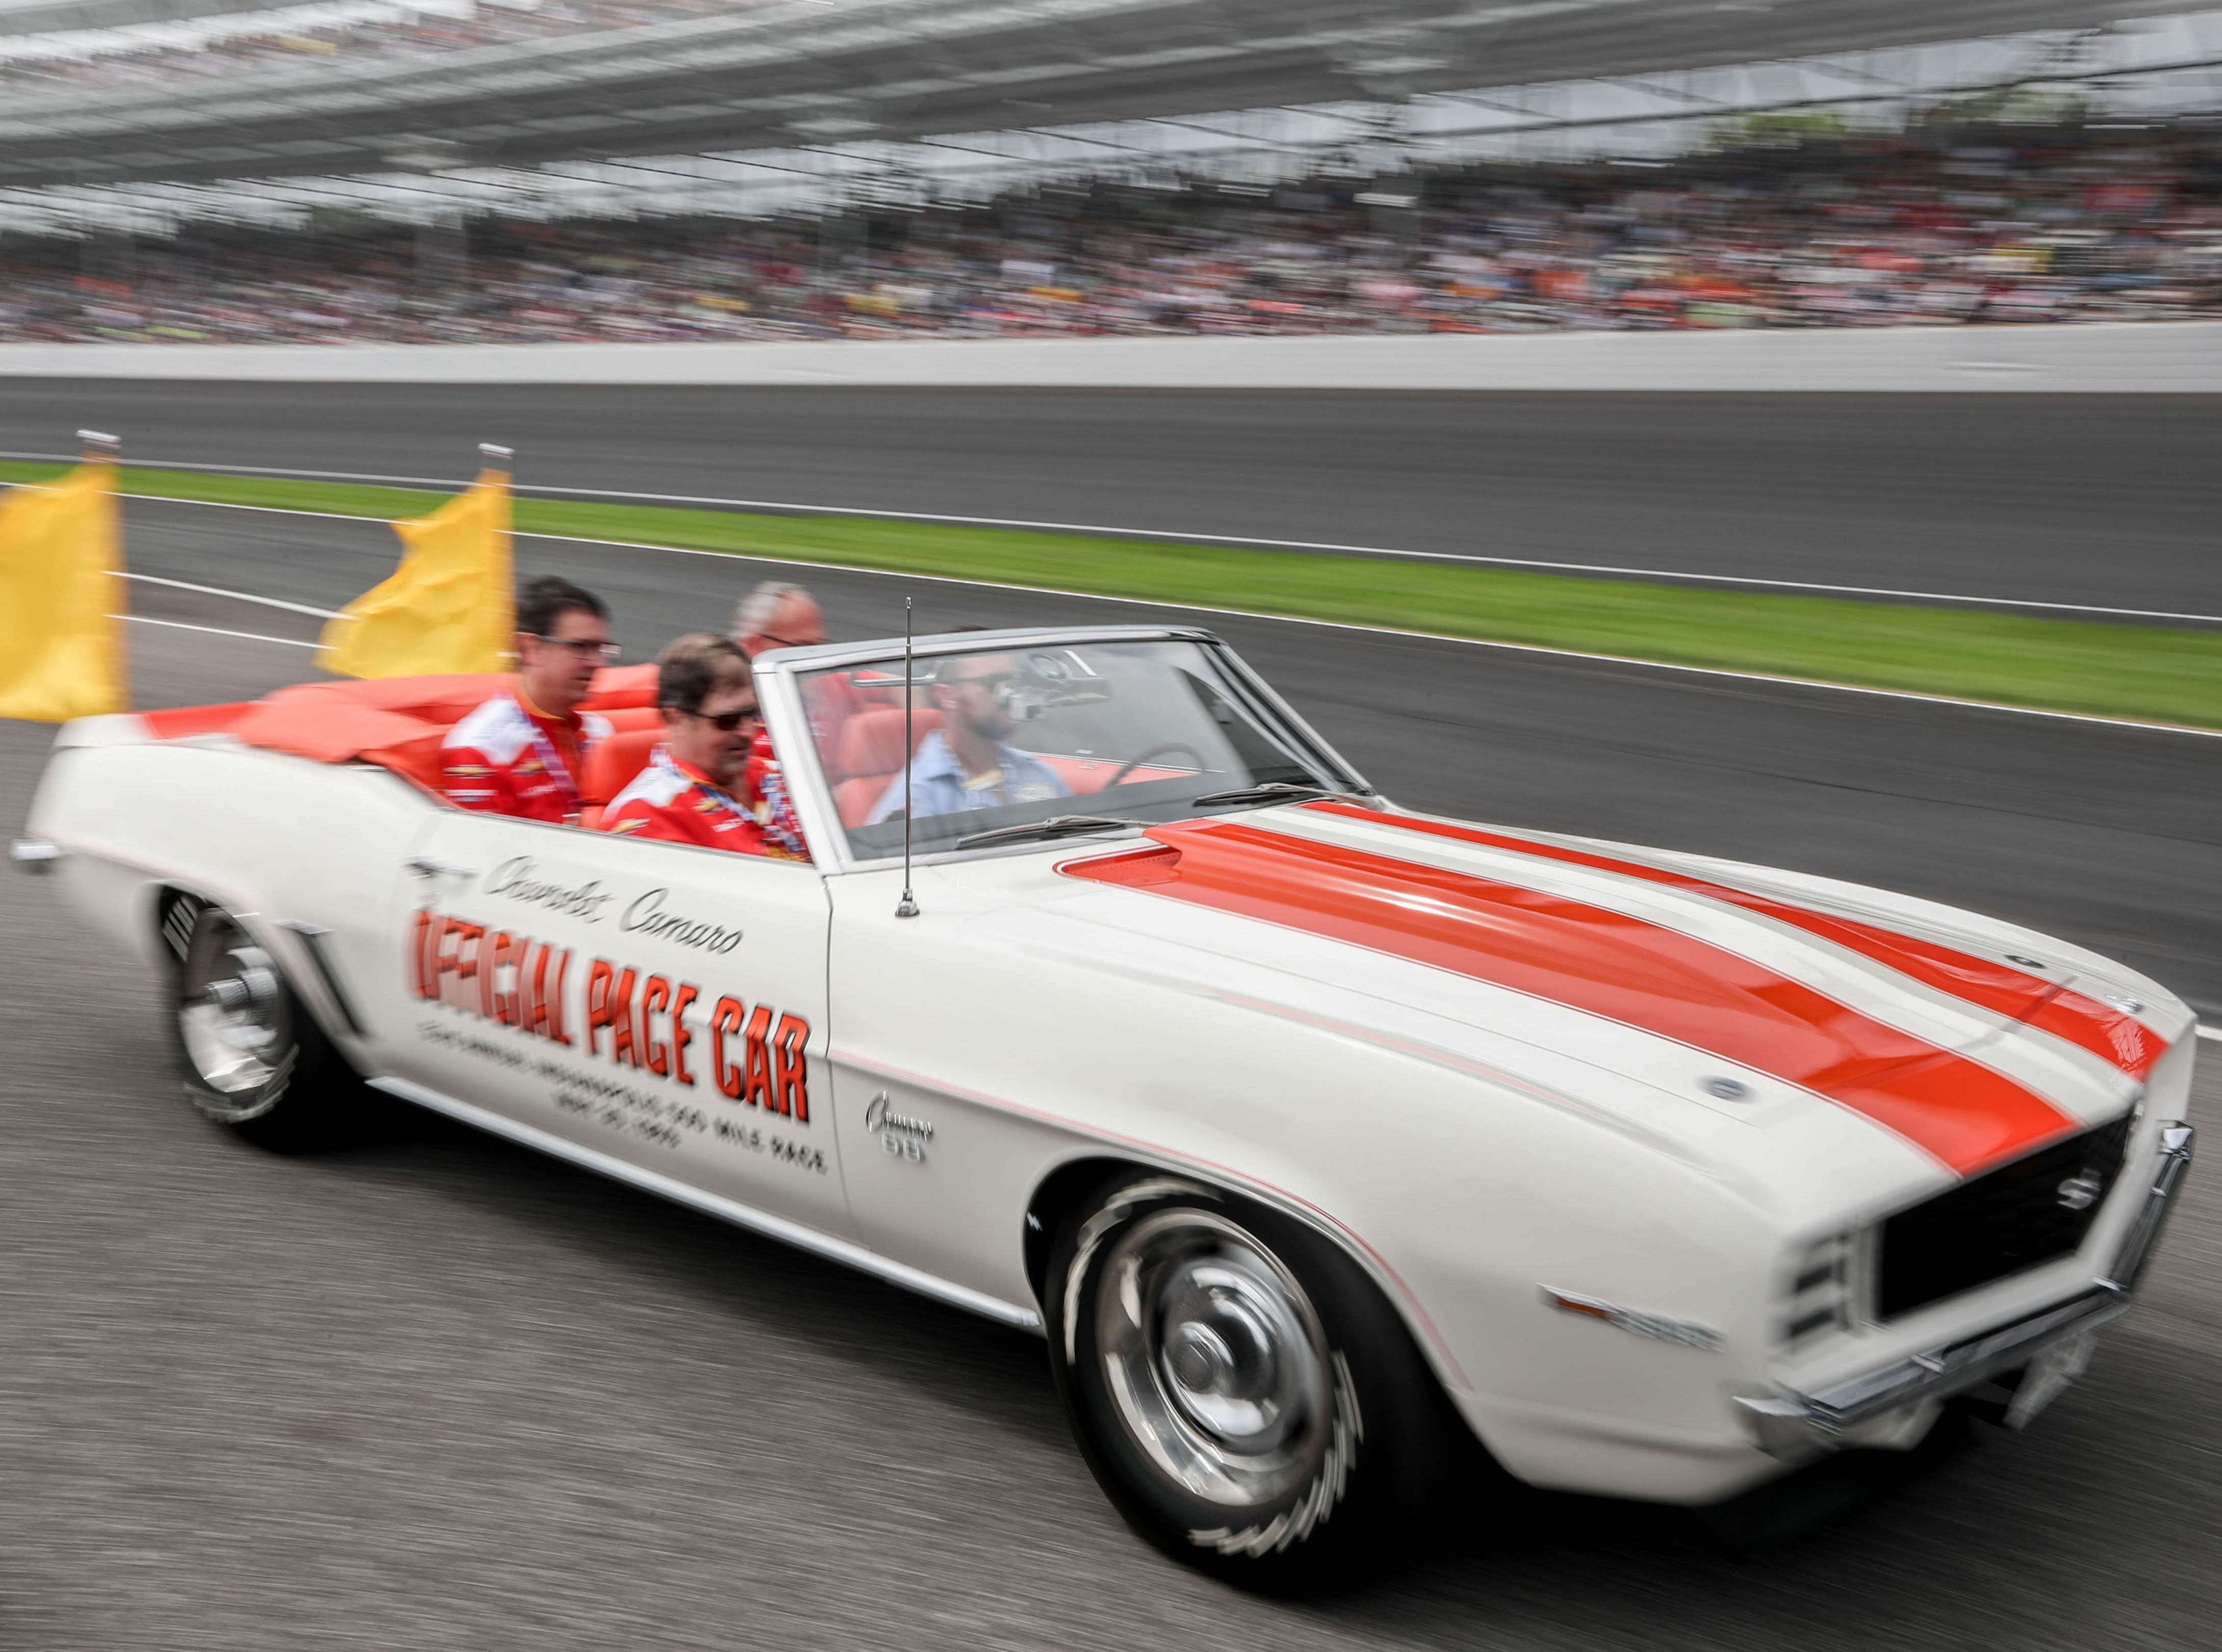 indy-500-pace-car-ride-vip-1